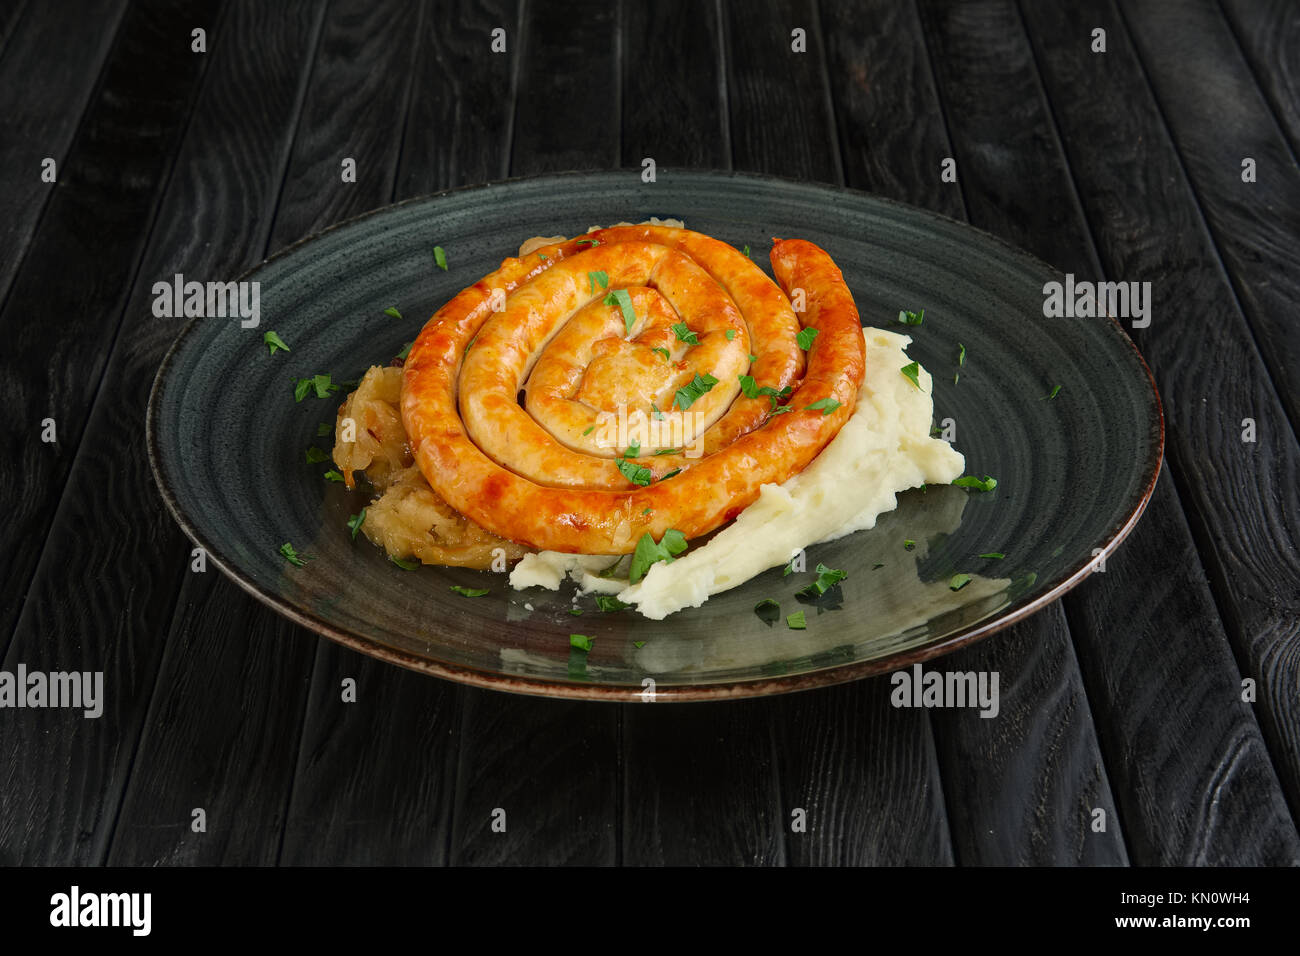 Fried homemade sausage with mashed potato and braised cabbage Stock Photo